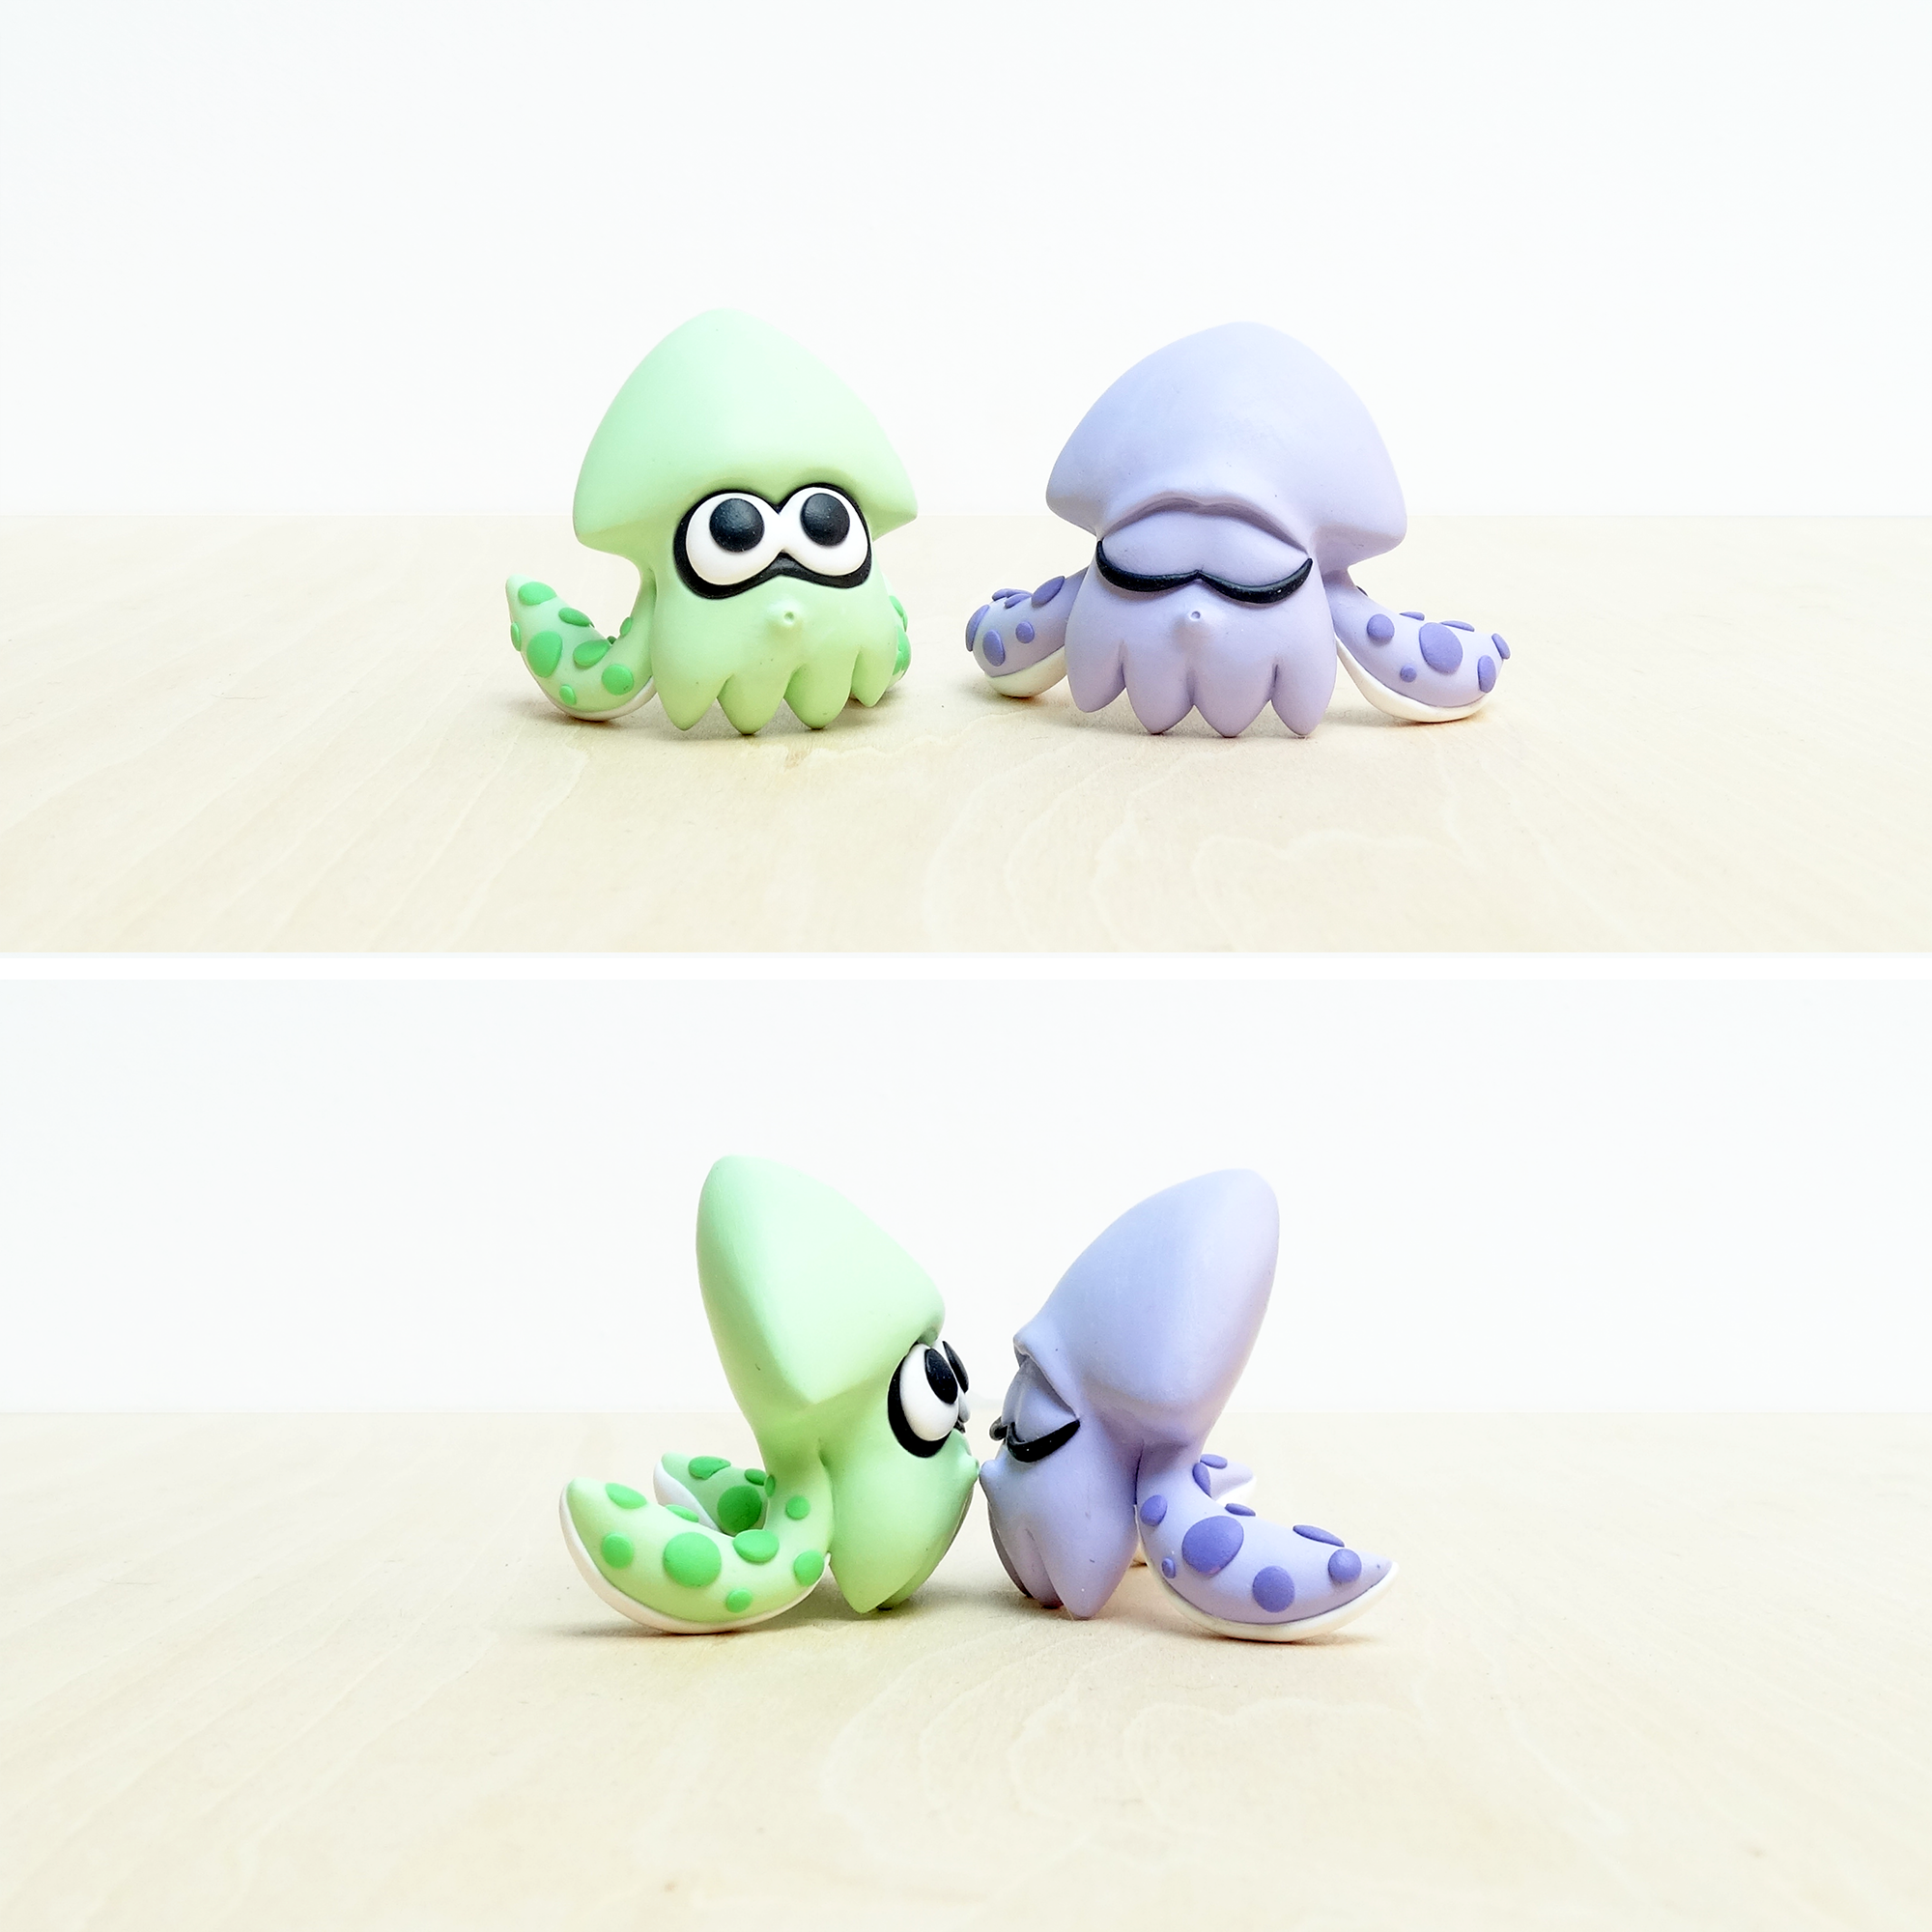 Splatoon Squid Commission Handmade Polymer Clay Polymer Clay Figures Handmade Polymer Clay Polymer Clay Crafts